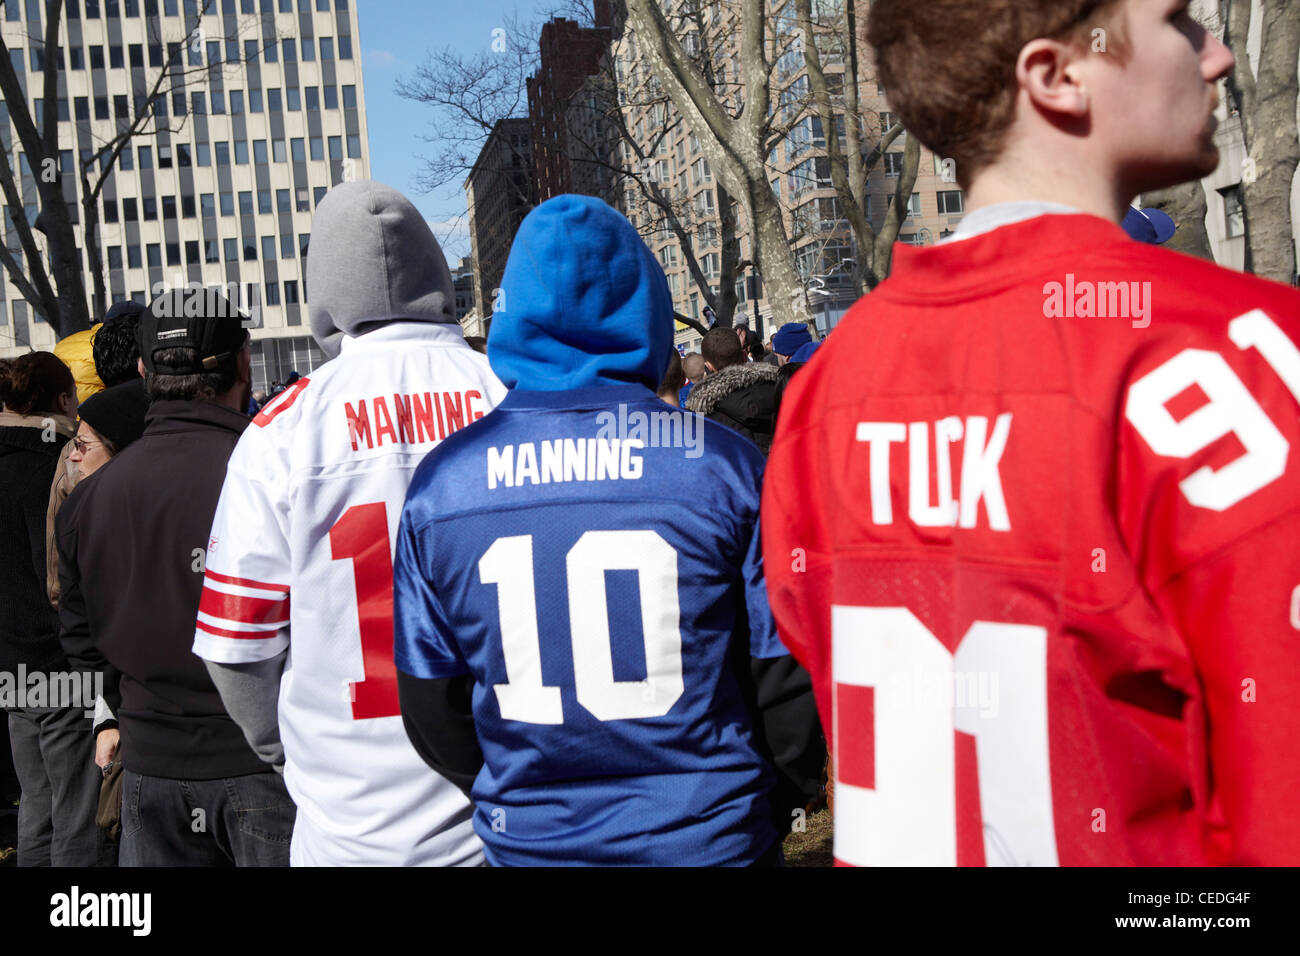 New York Giants fans in shirts, Ticker tape - Stock Image